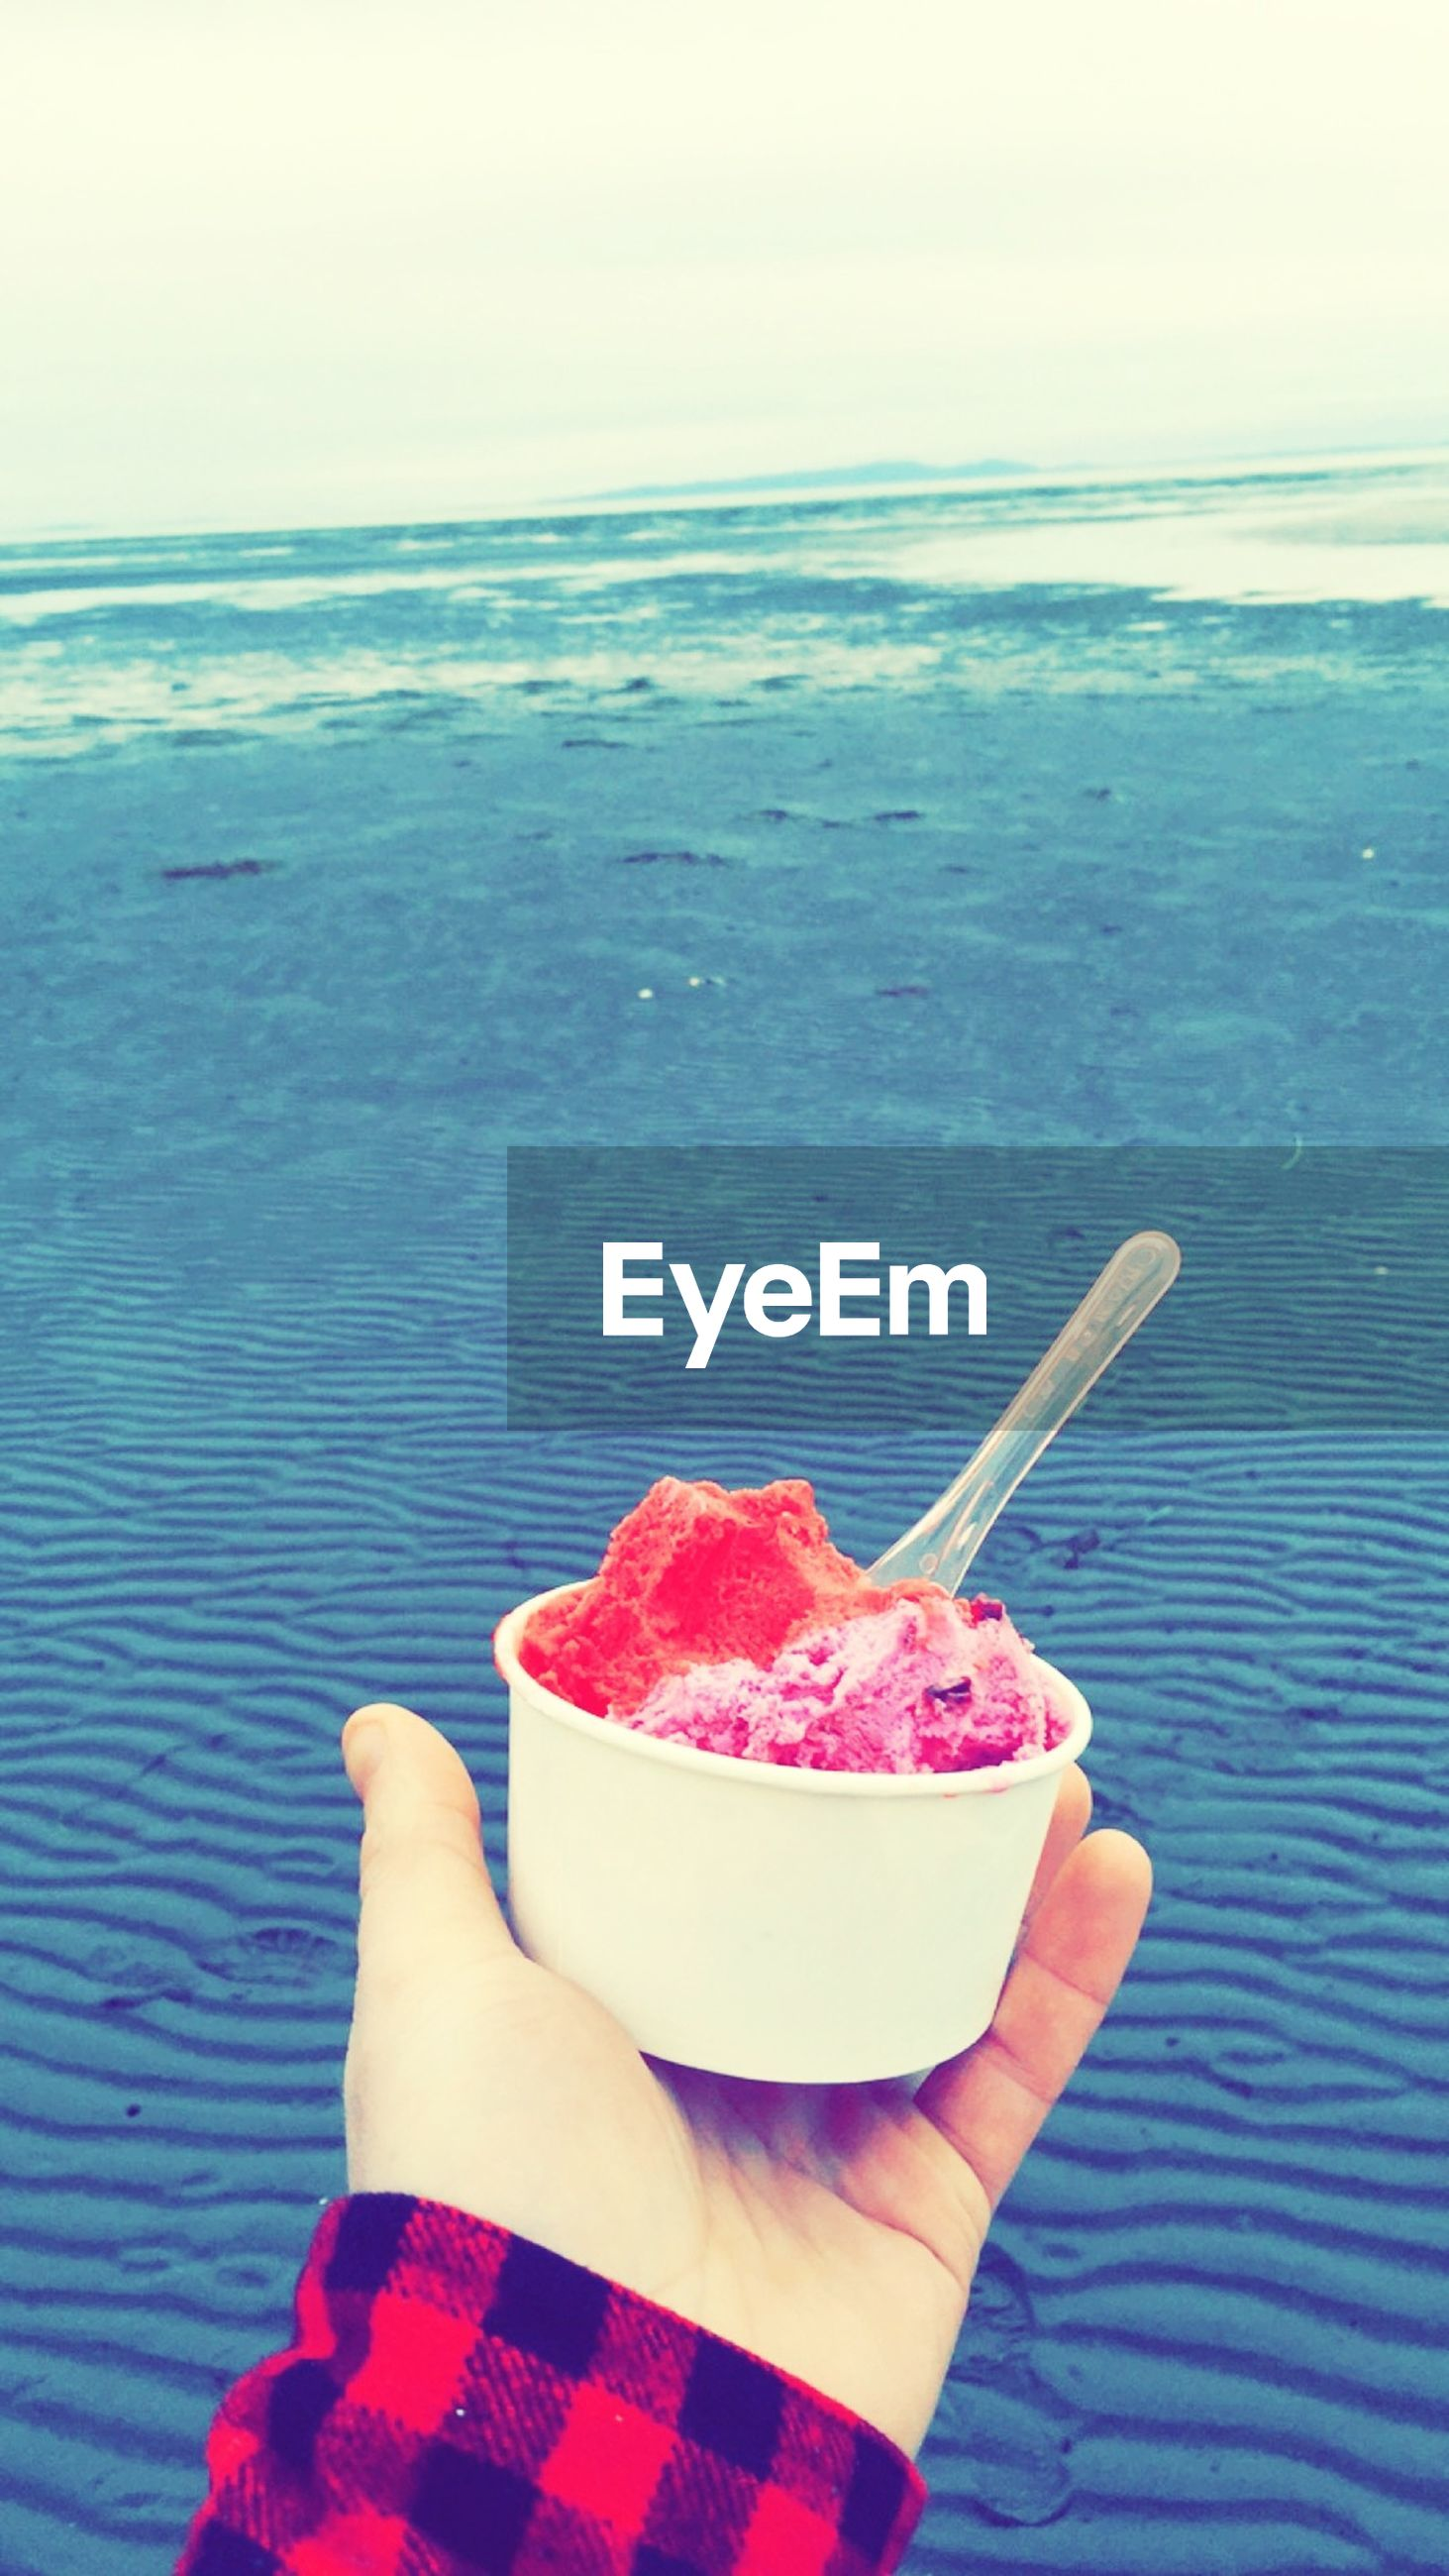 Cropped hand holding ice cream against sea